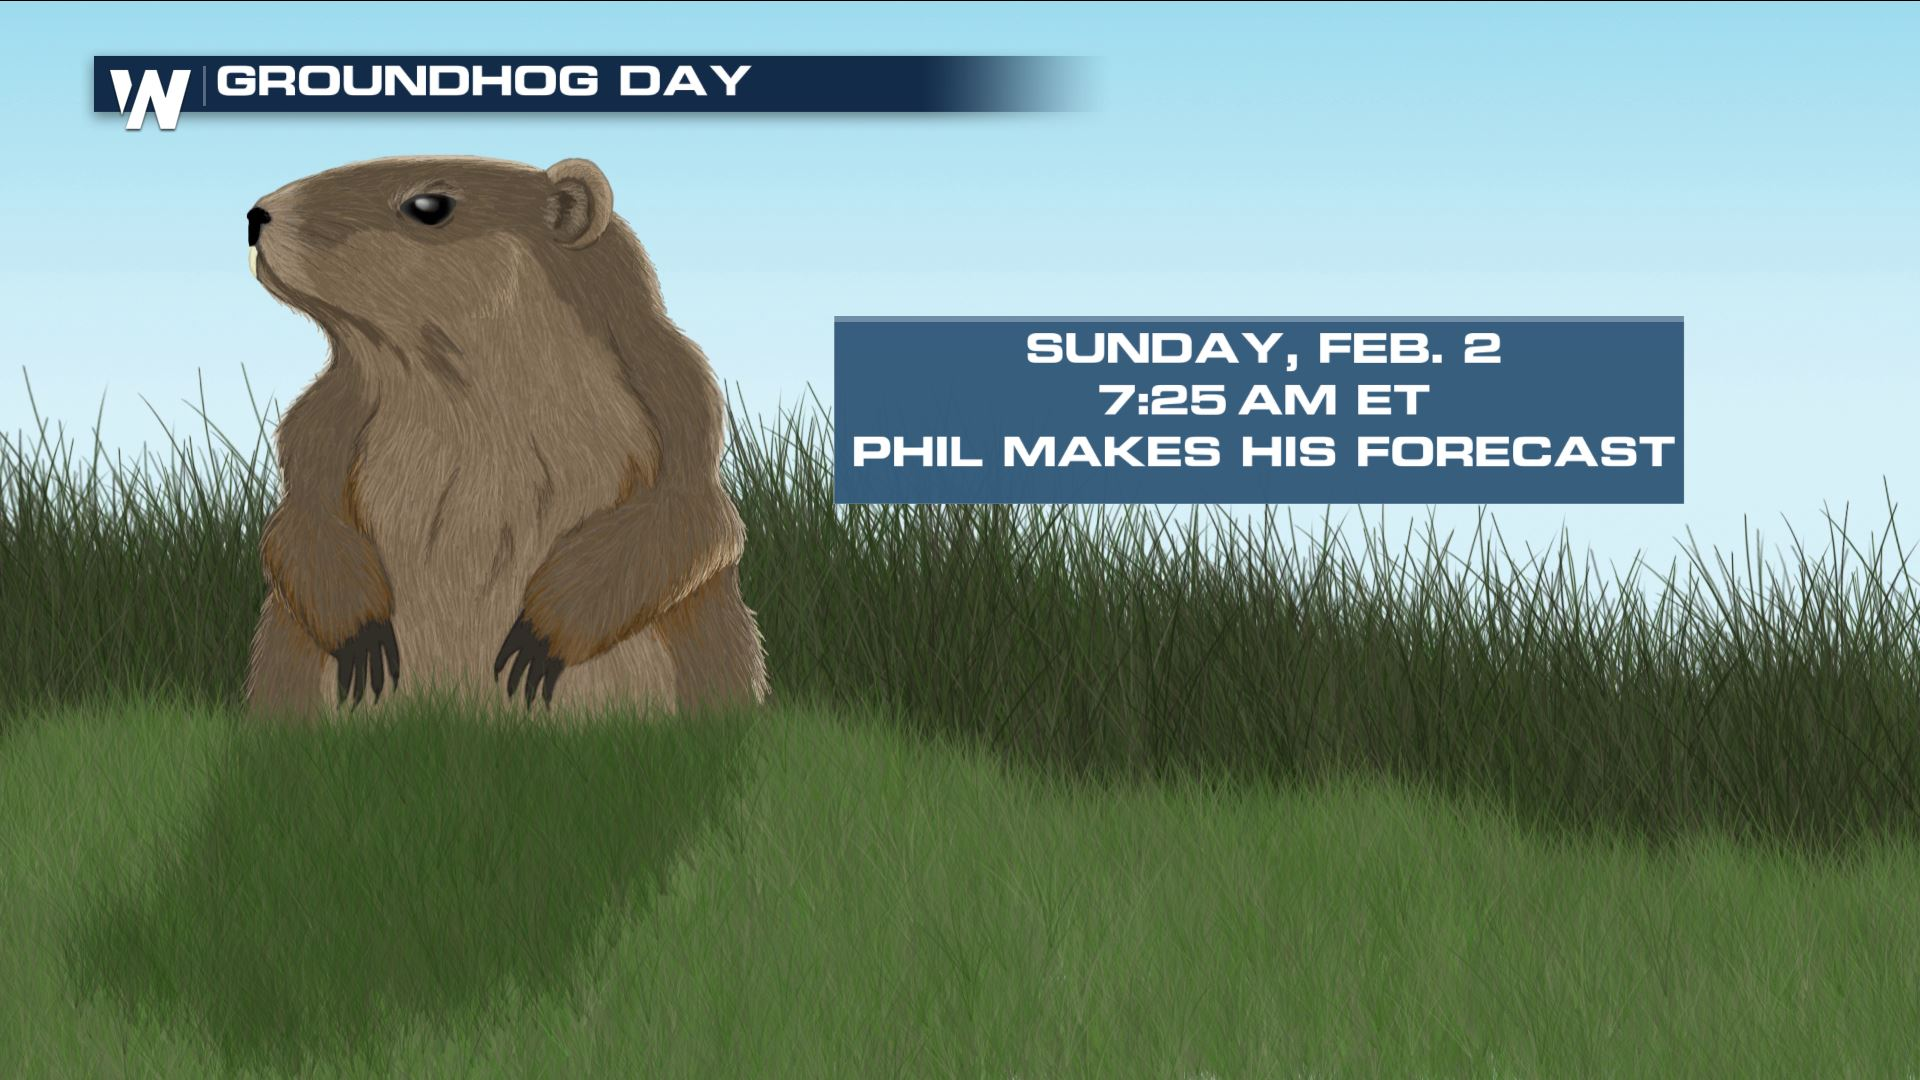 Phil Makes Groundhog Day Prediction Sunday